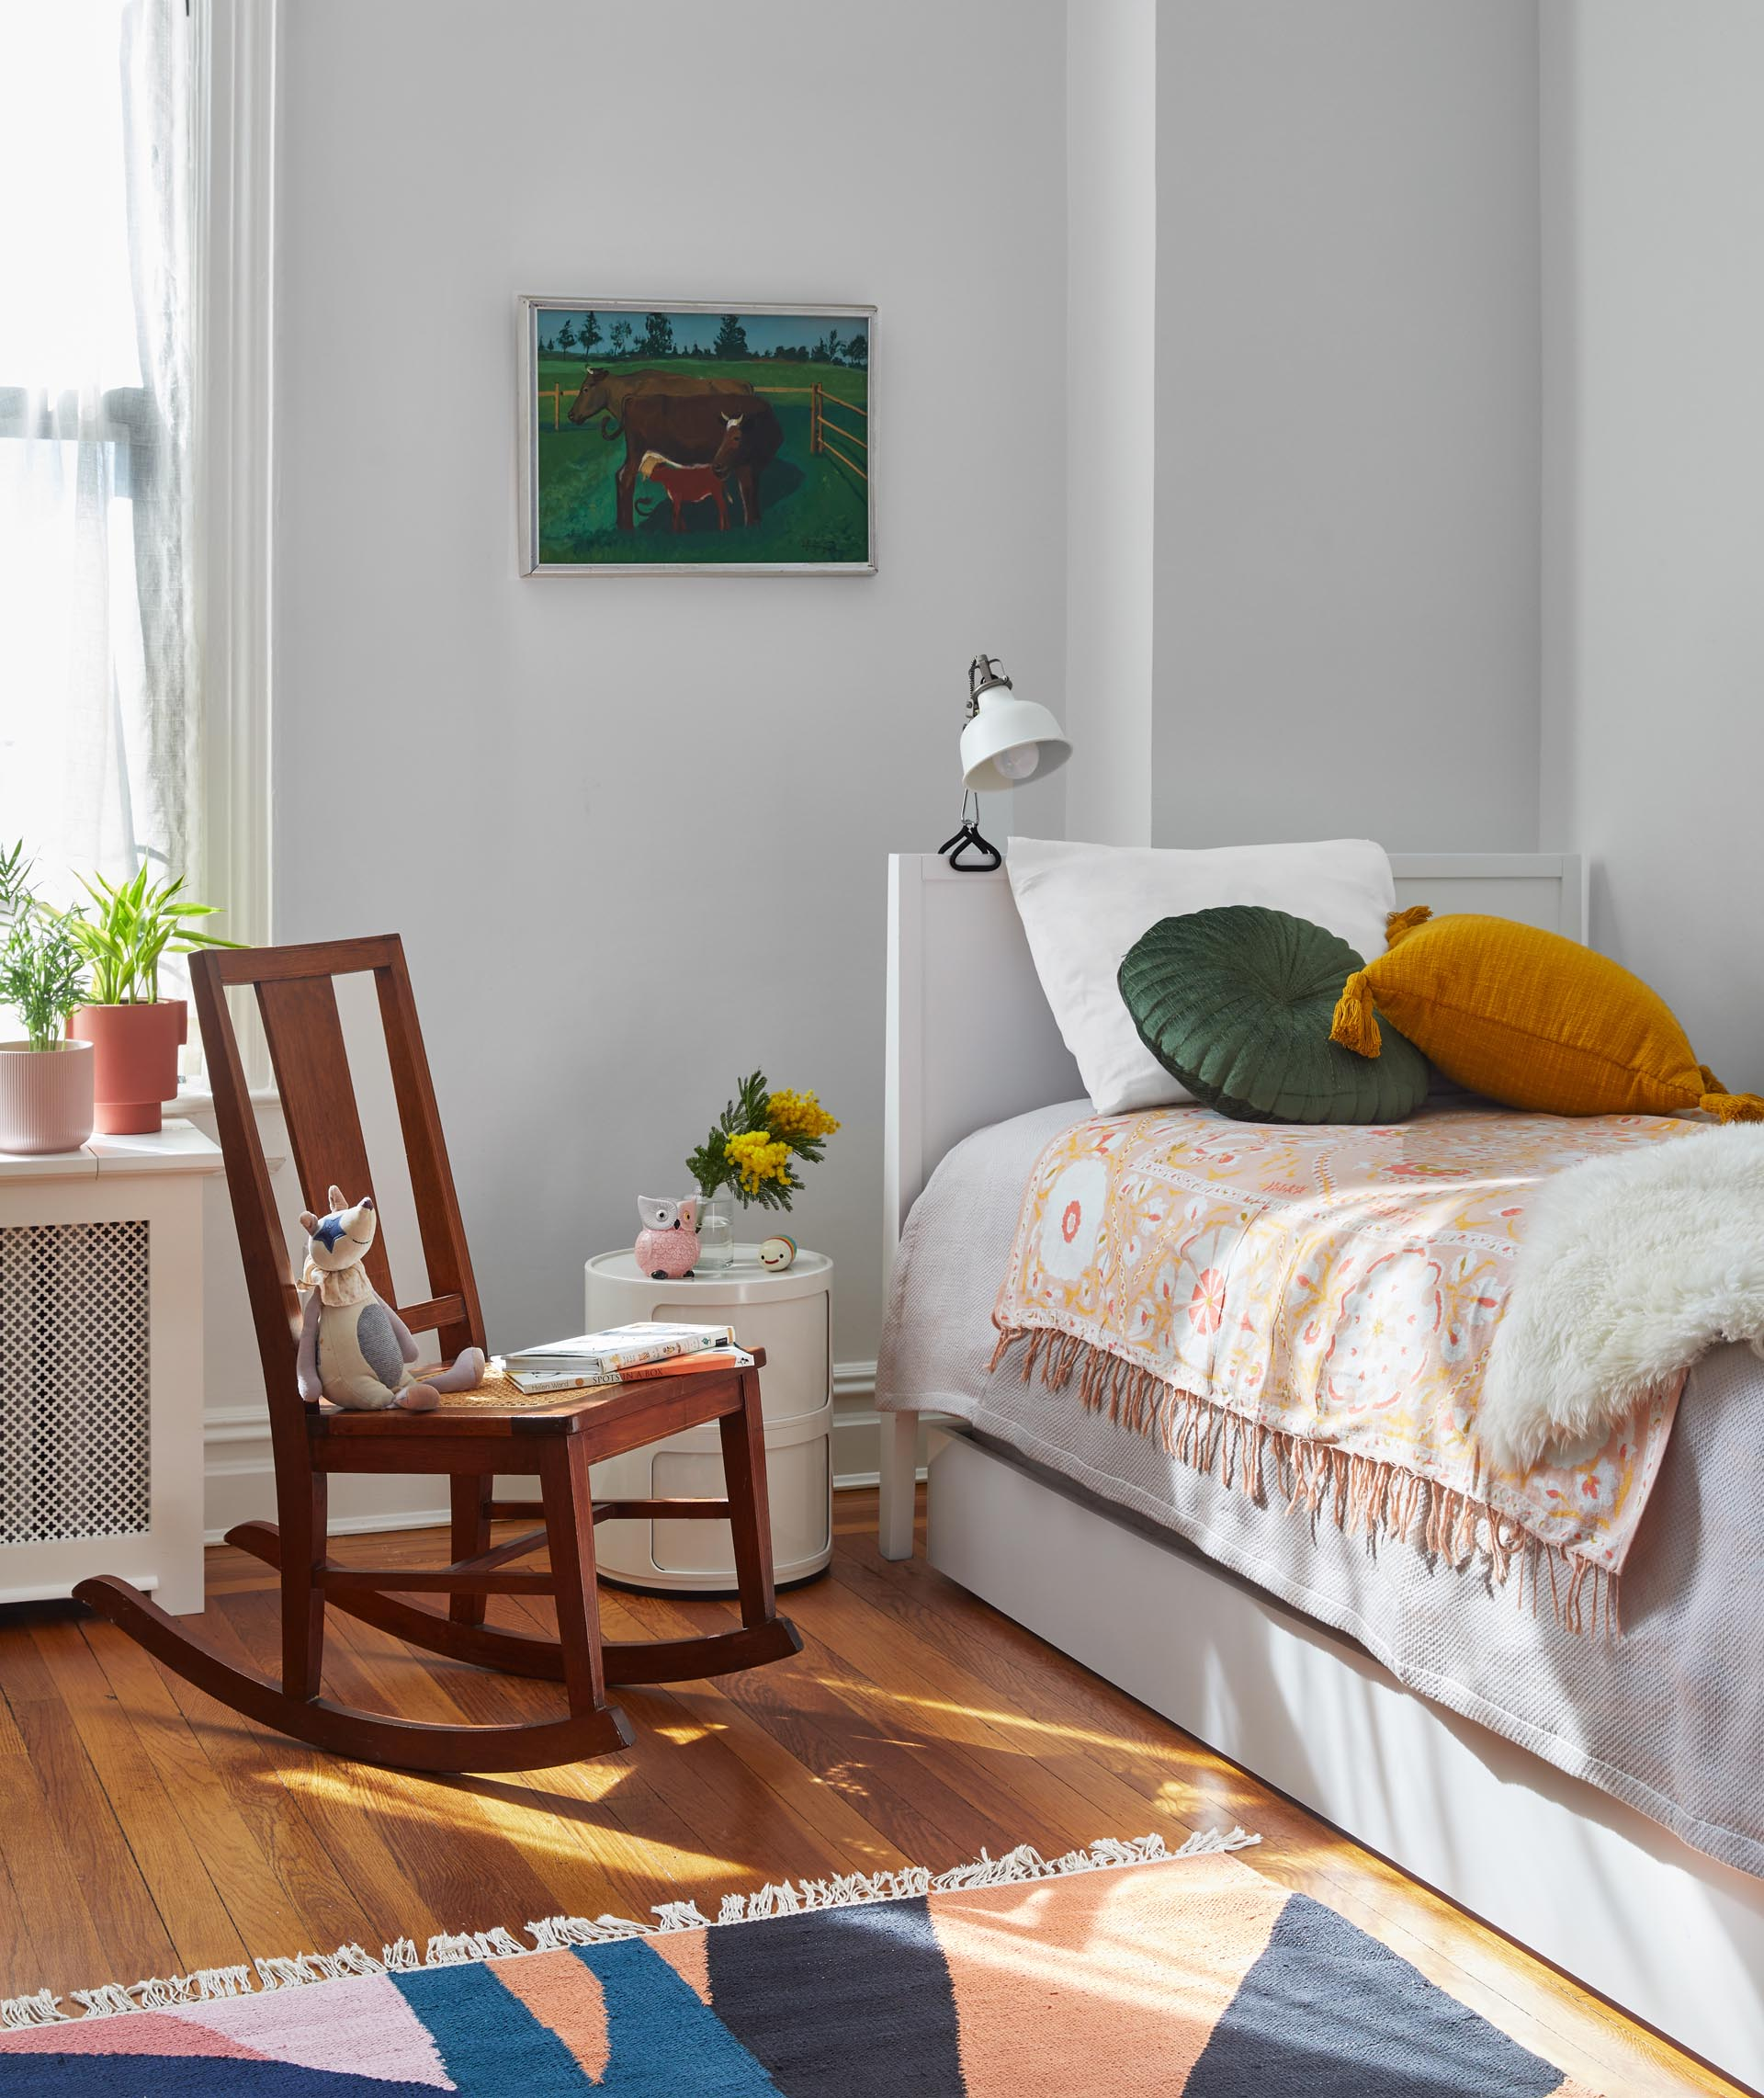 In this kids room, bright and colorful accents stand out against the light-colored walls.